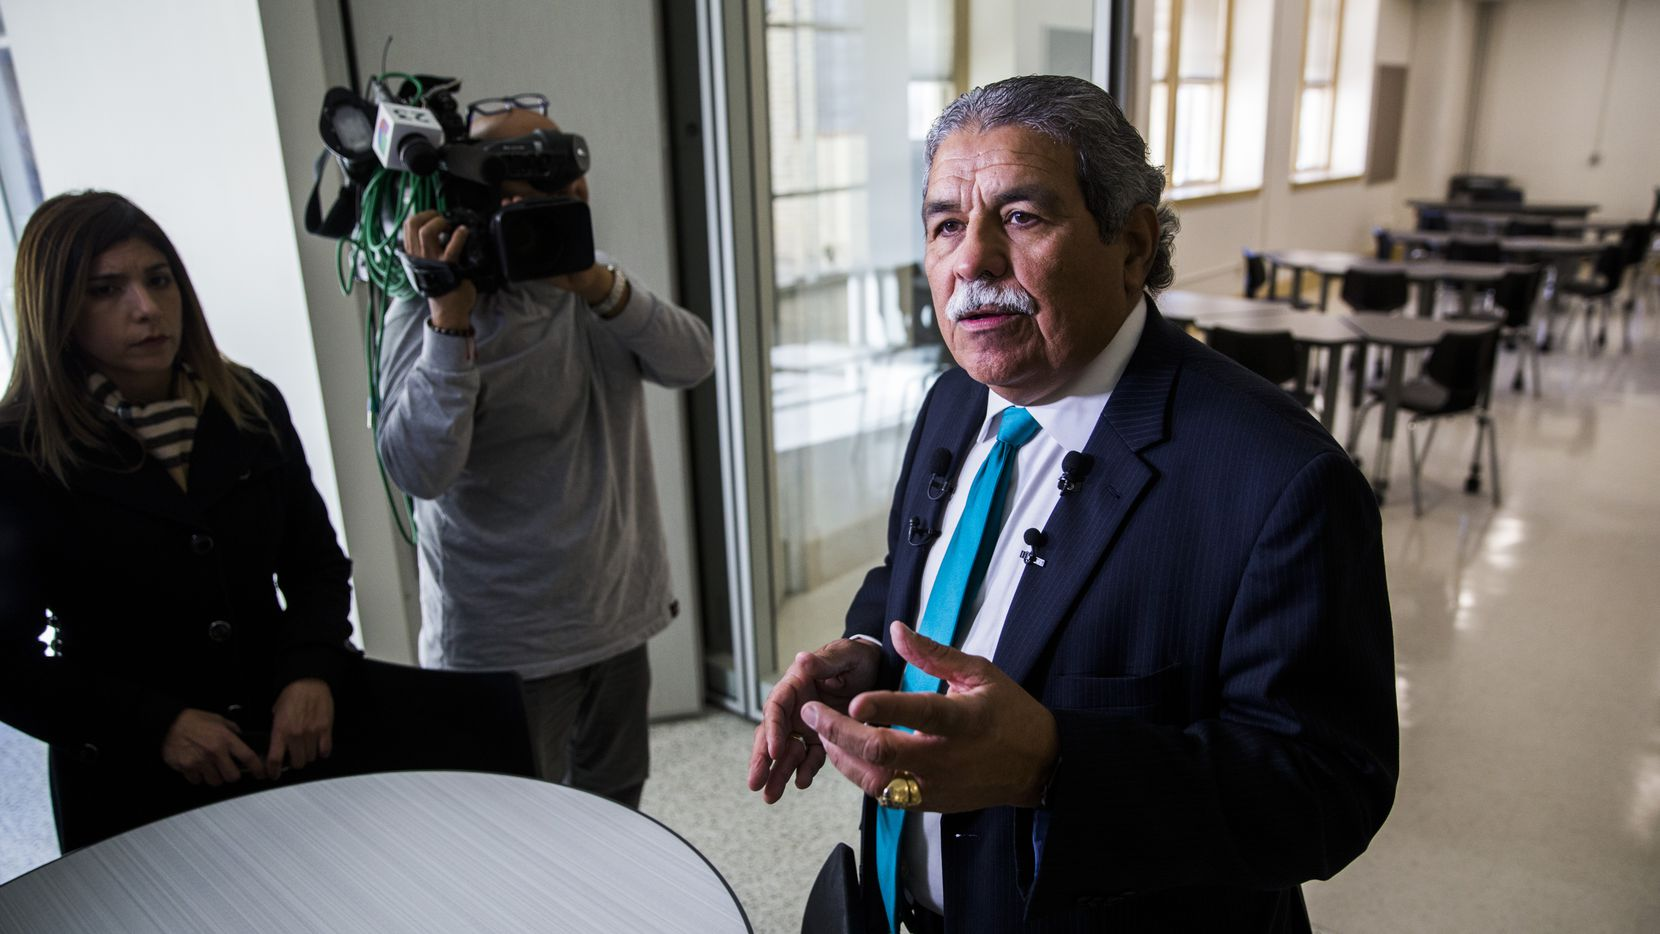 Dallas ISD Superintendent Michael Hinojosa (right) talks about classroom space to reporters on Thursday, December 19, 2019 at South Oak Cliff High School in Dallas. It was part of a two-year, $52 million renovation to the campus. (Ashley Landis/The Dallas Morning News)